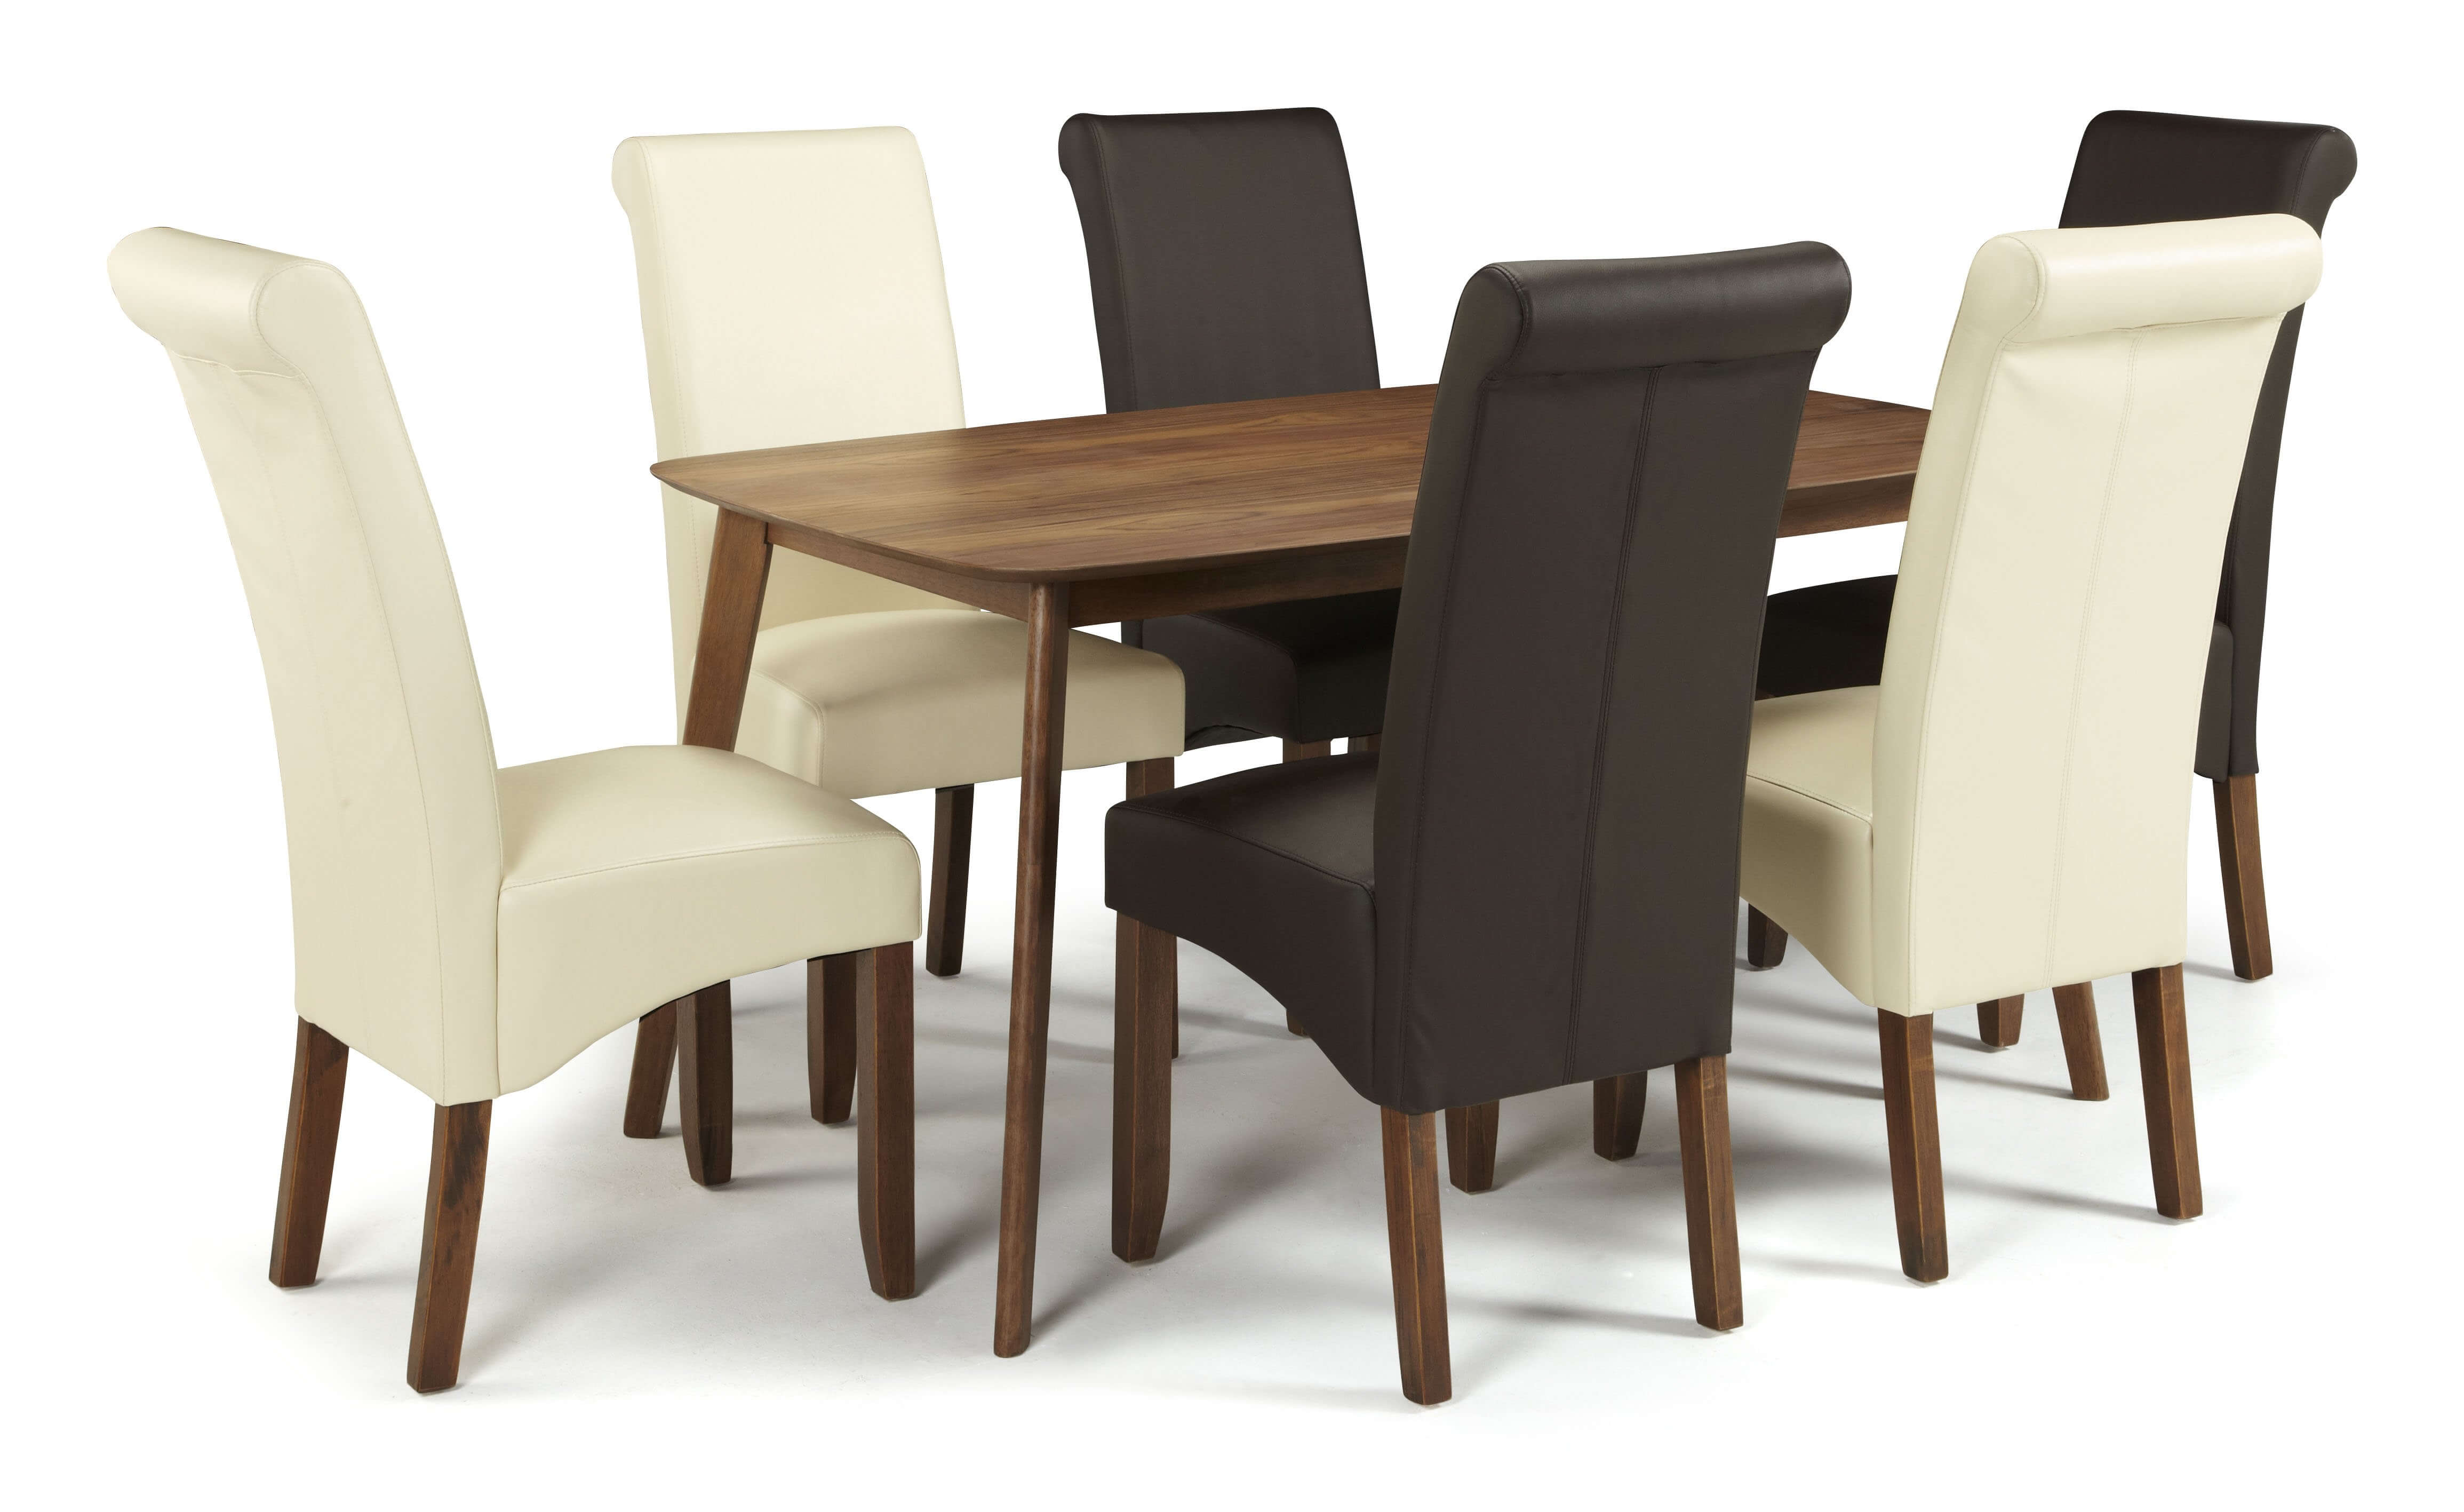 Melbourne Faux Leather Dining Chairs with Walnut Legs